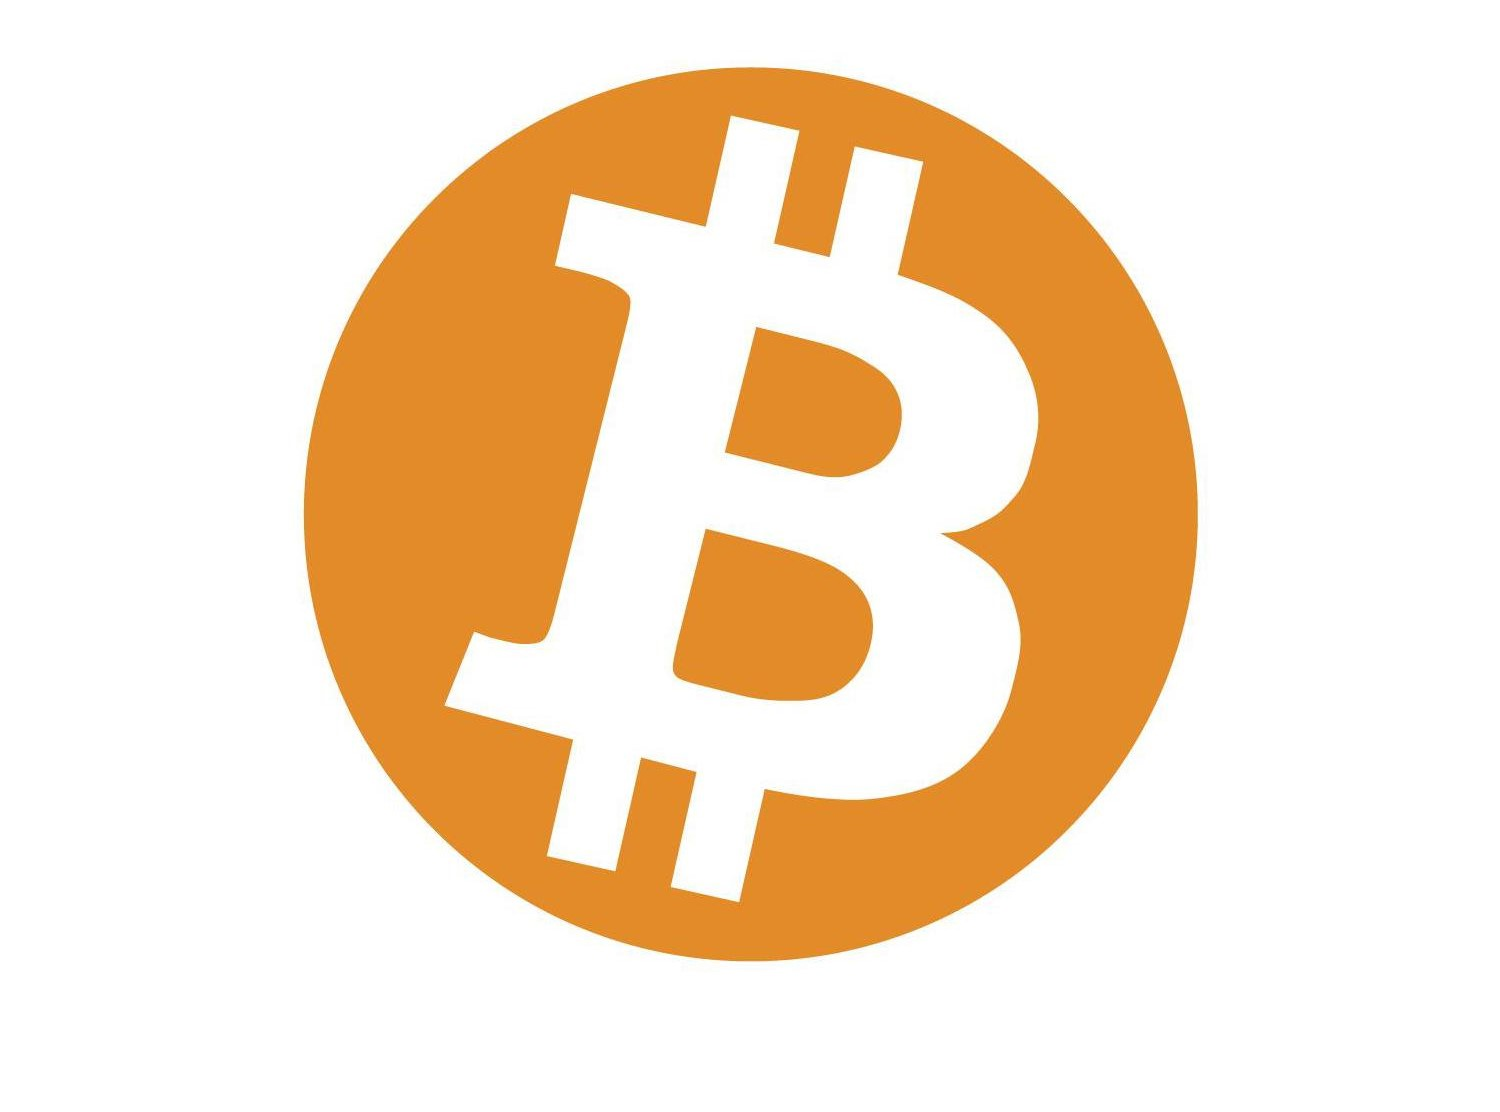 The Bitcoin Logo - orange with B sign with lines through it